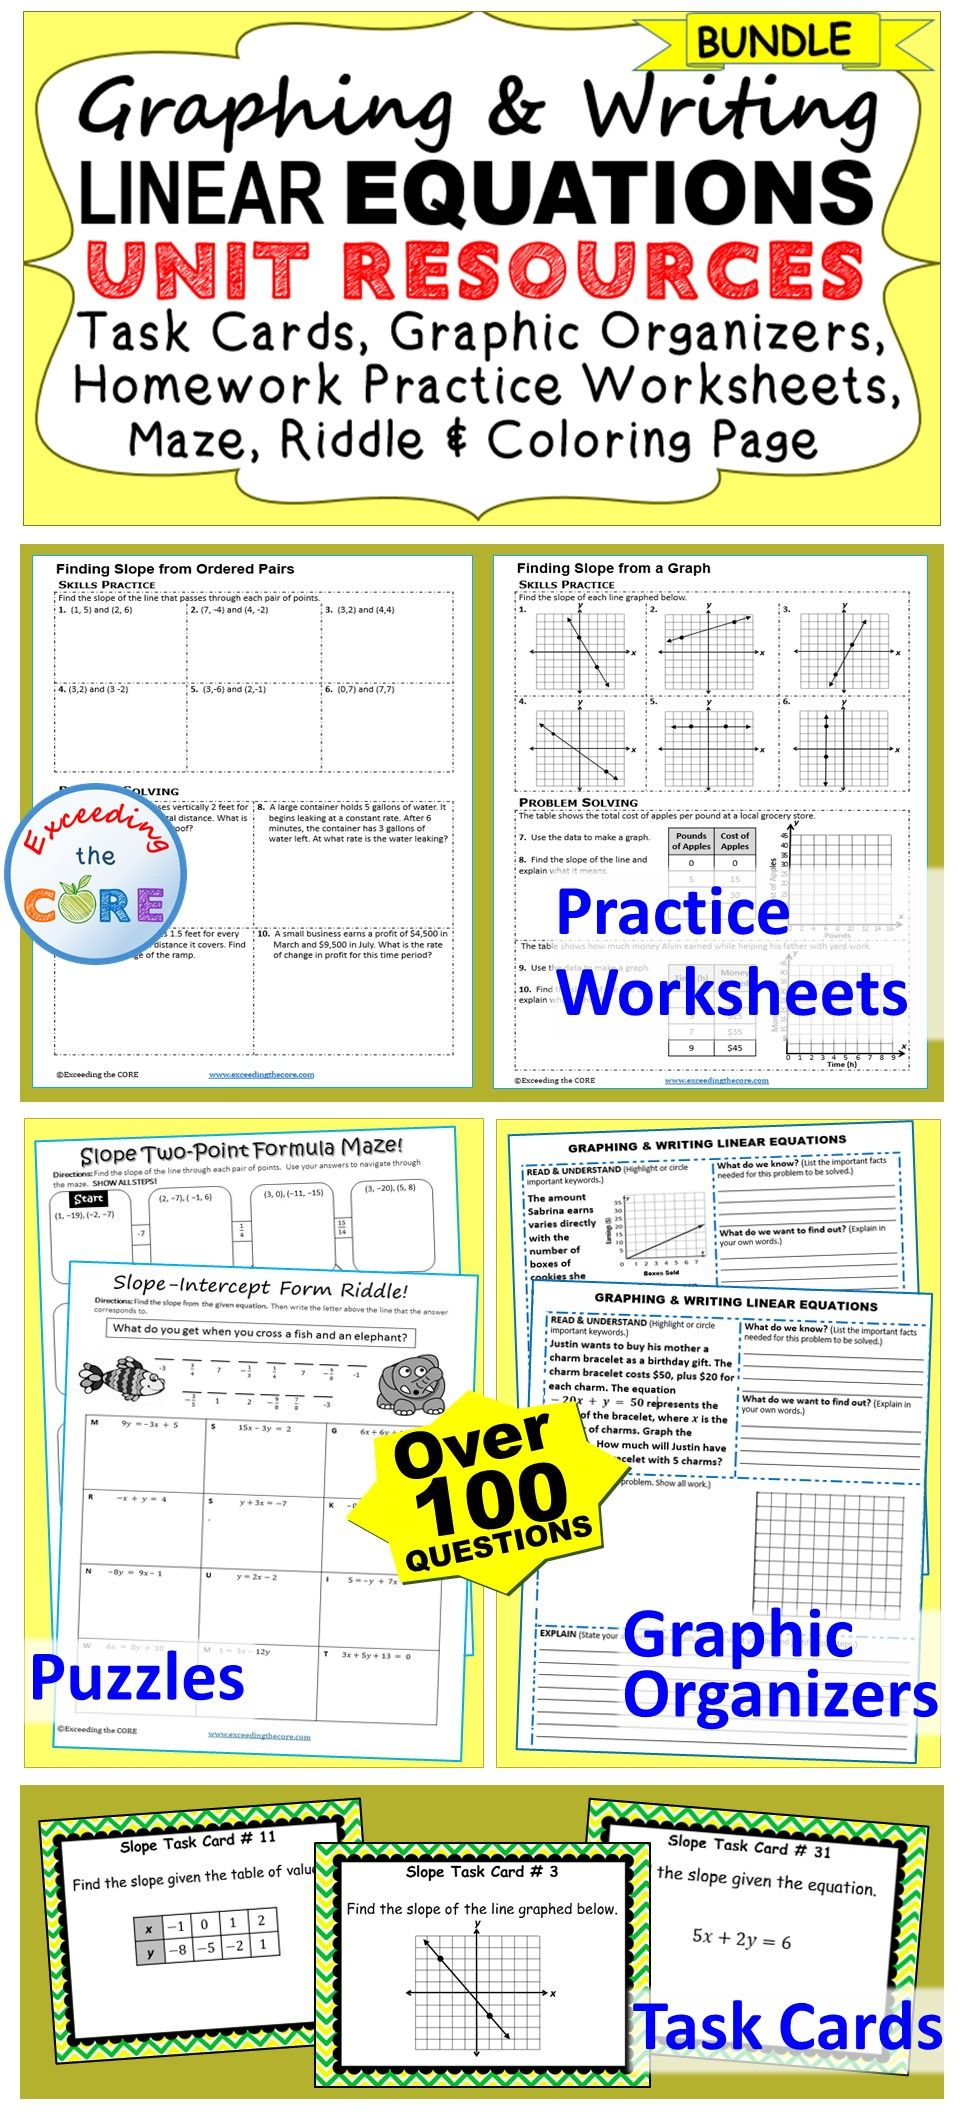 GRAPHING & WRITING LINEAR EQUATIONS + SLOPE Bundle Math